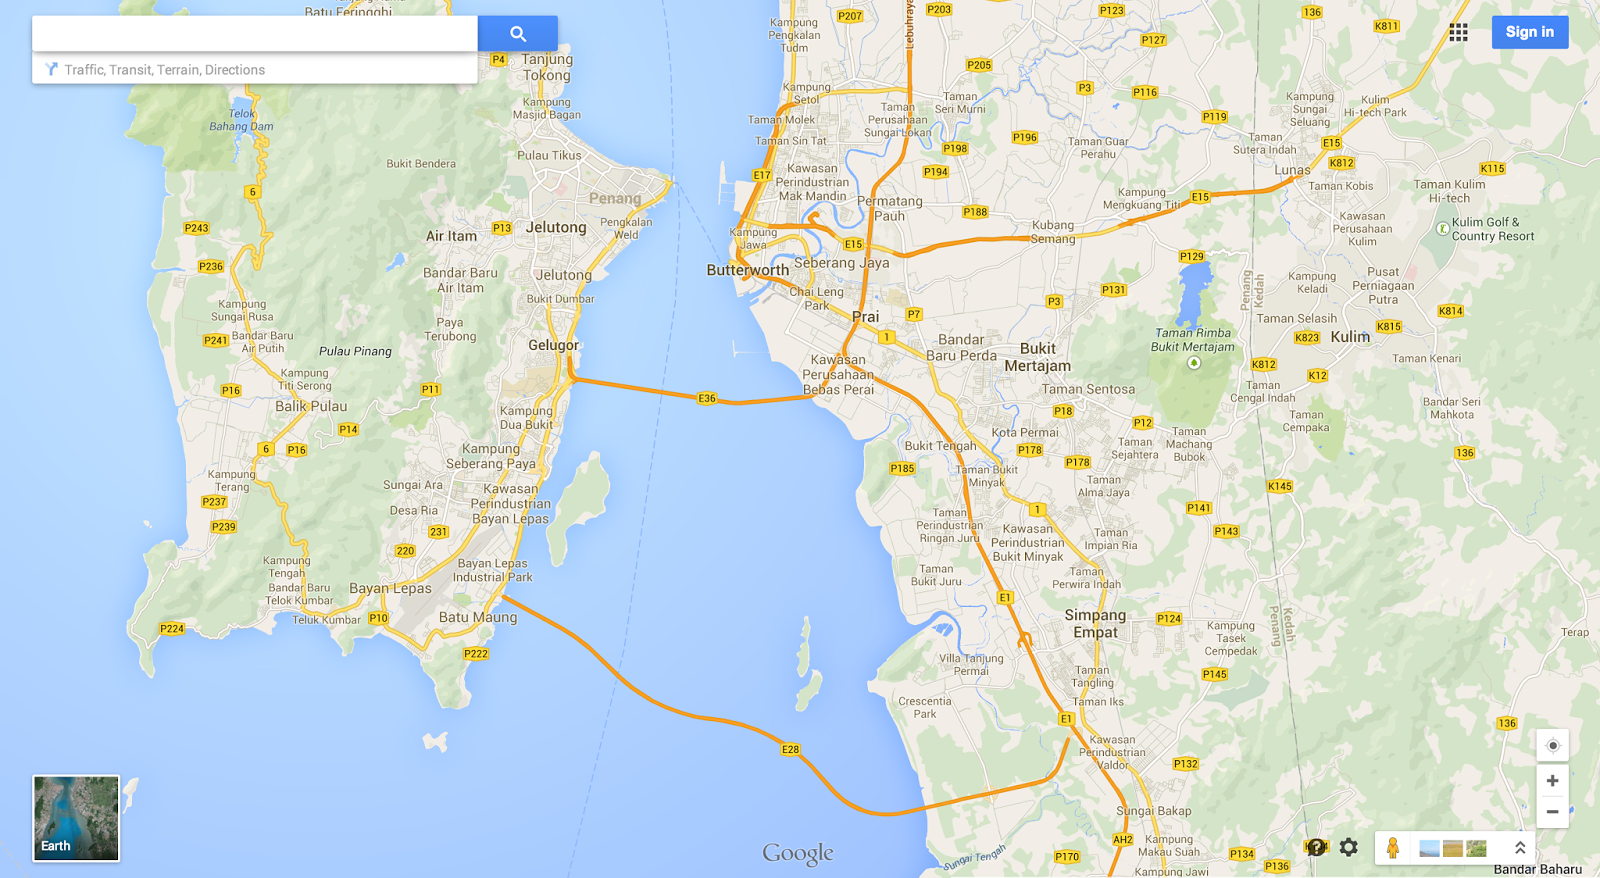 Google Lat Long: Making of Maps: Reaching a milestone on mapquest malaysia, sygic malaysia, google data center locations map, time zones in malaysia, eleanor hawkins malaysia, largest cities in malaysia, youtube malaysia, kudat sabah malaysia, peta malaysia, map of malaysia, singapore map showing malaysia, google earth, blacks in malaysia, women of malaysia, penang malaysia, seremban malaysia, royal regalia of malaysia, google office malaysia, caltex malaysia, bing news malaysia,